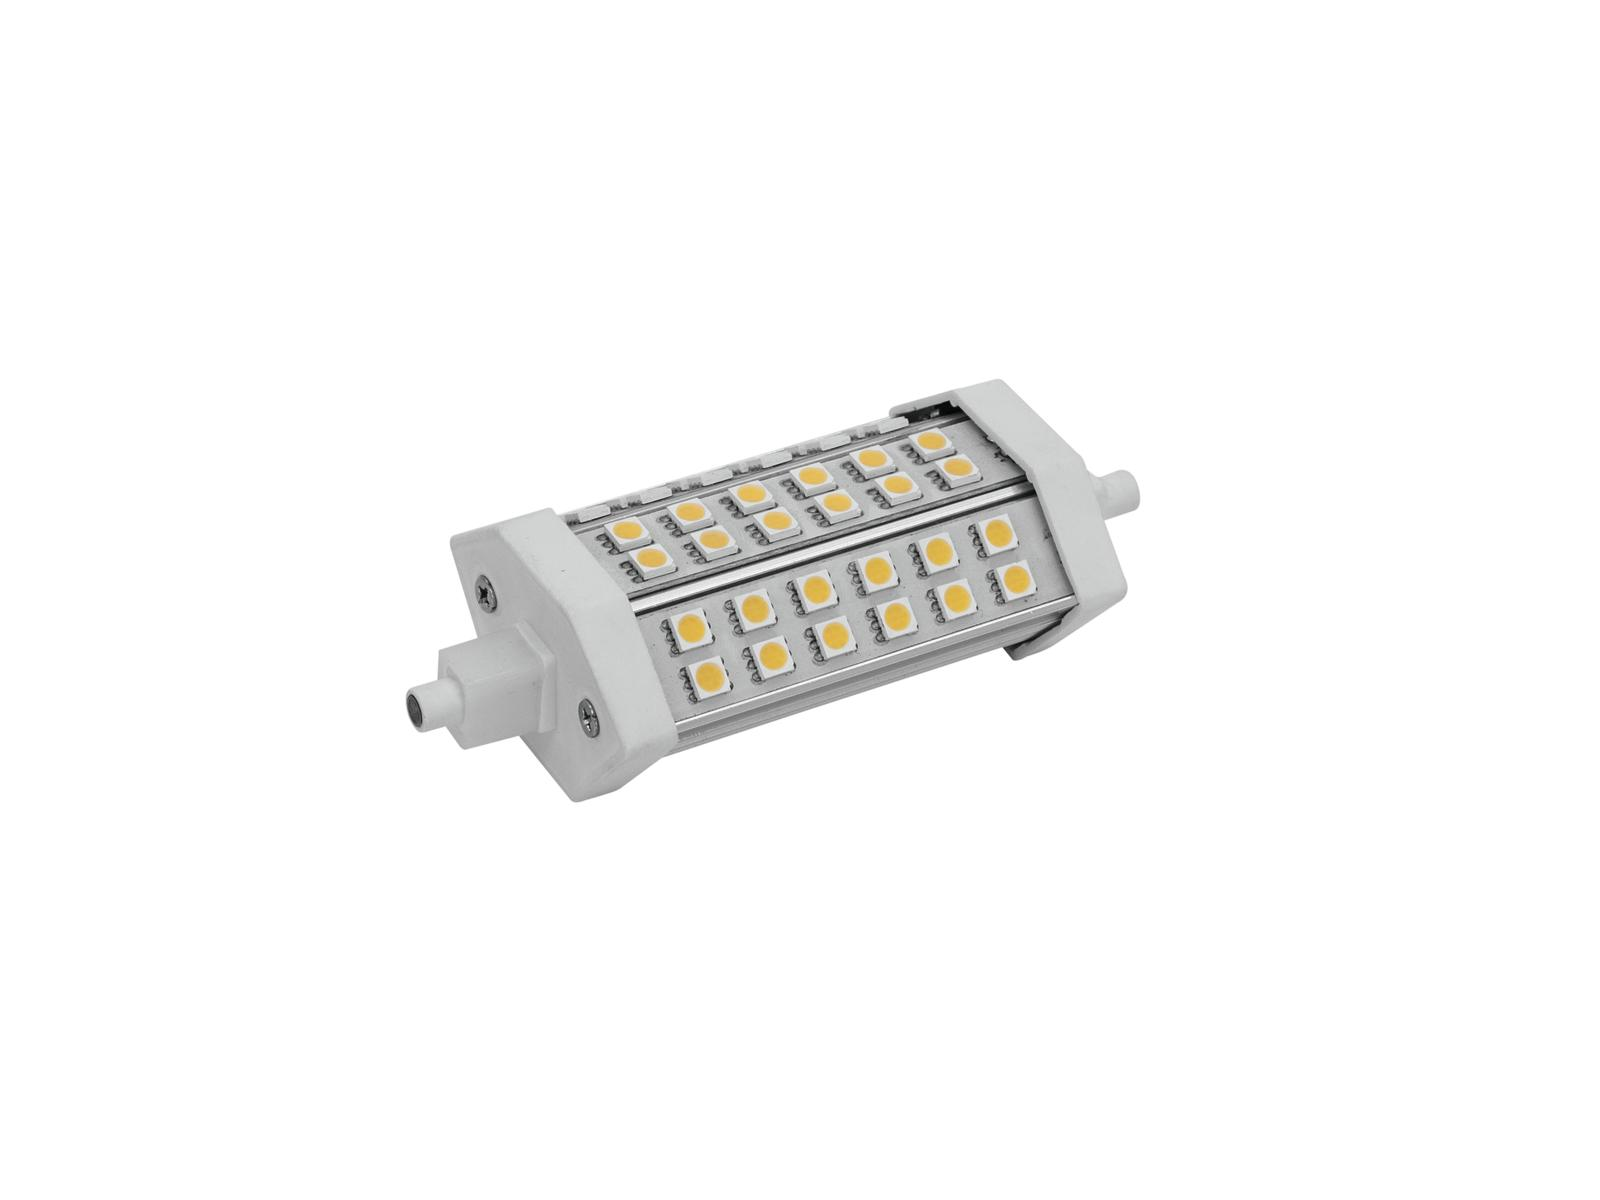 OMNILUX LED R7S 230V 8W 6400K luce del cereale di SMD5050 dimmerabile